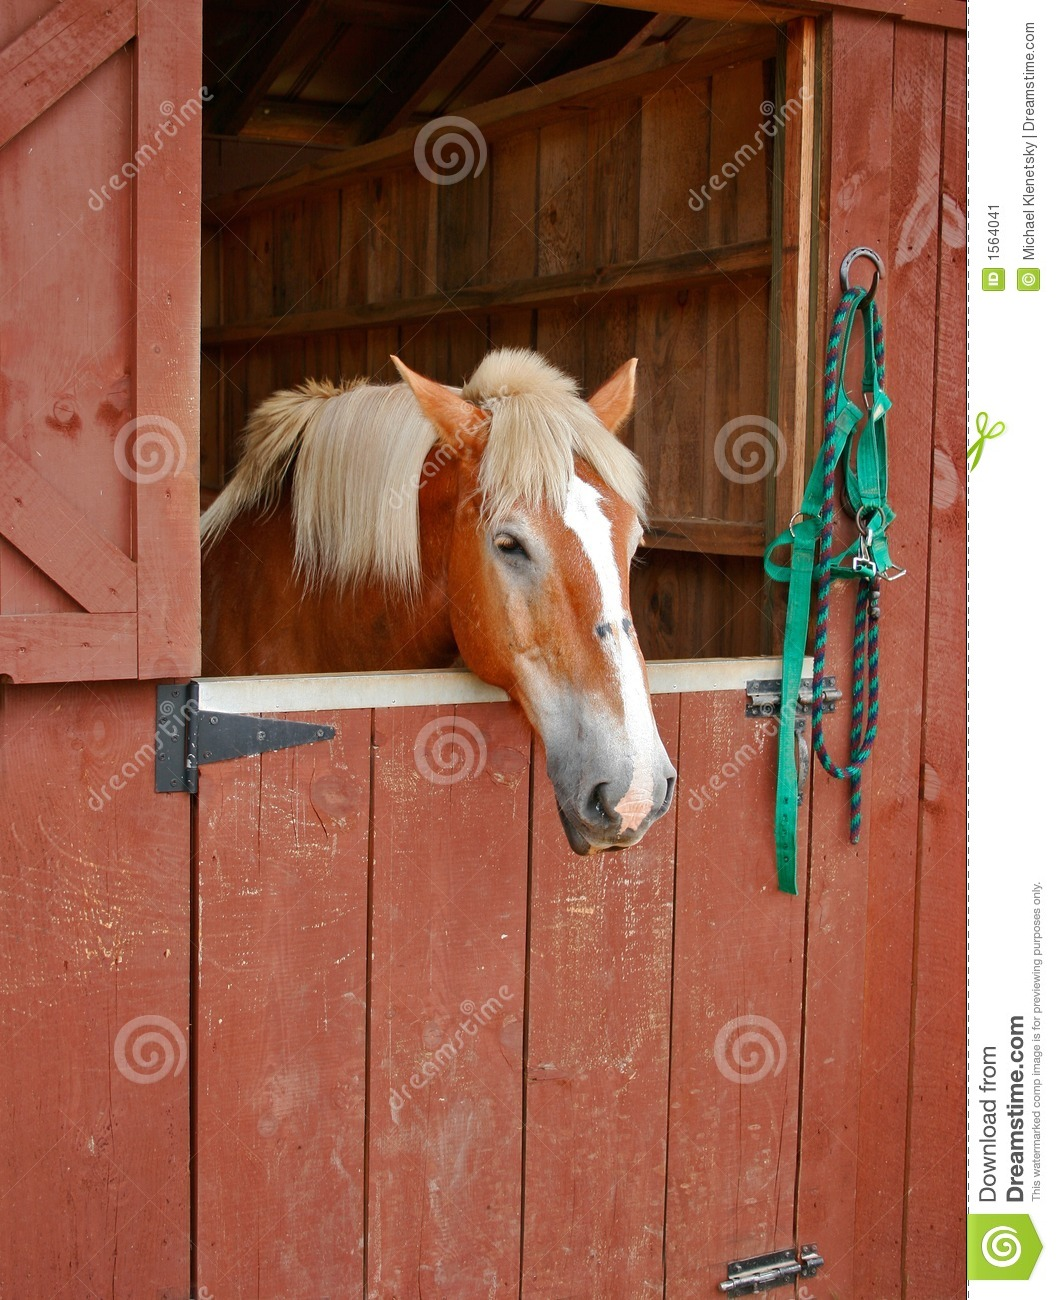 Horse In Stall Stock Image.